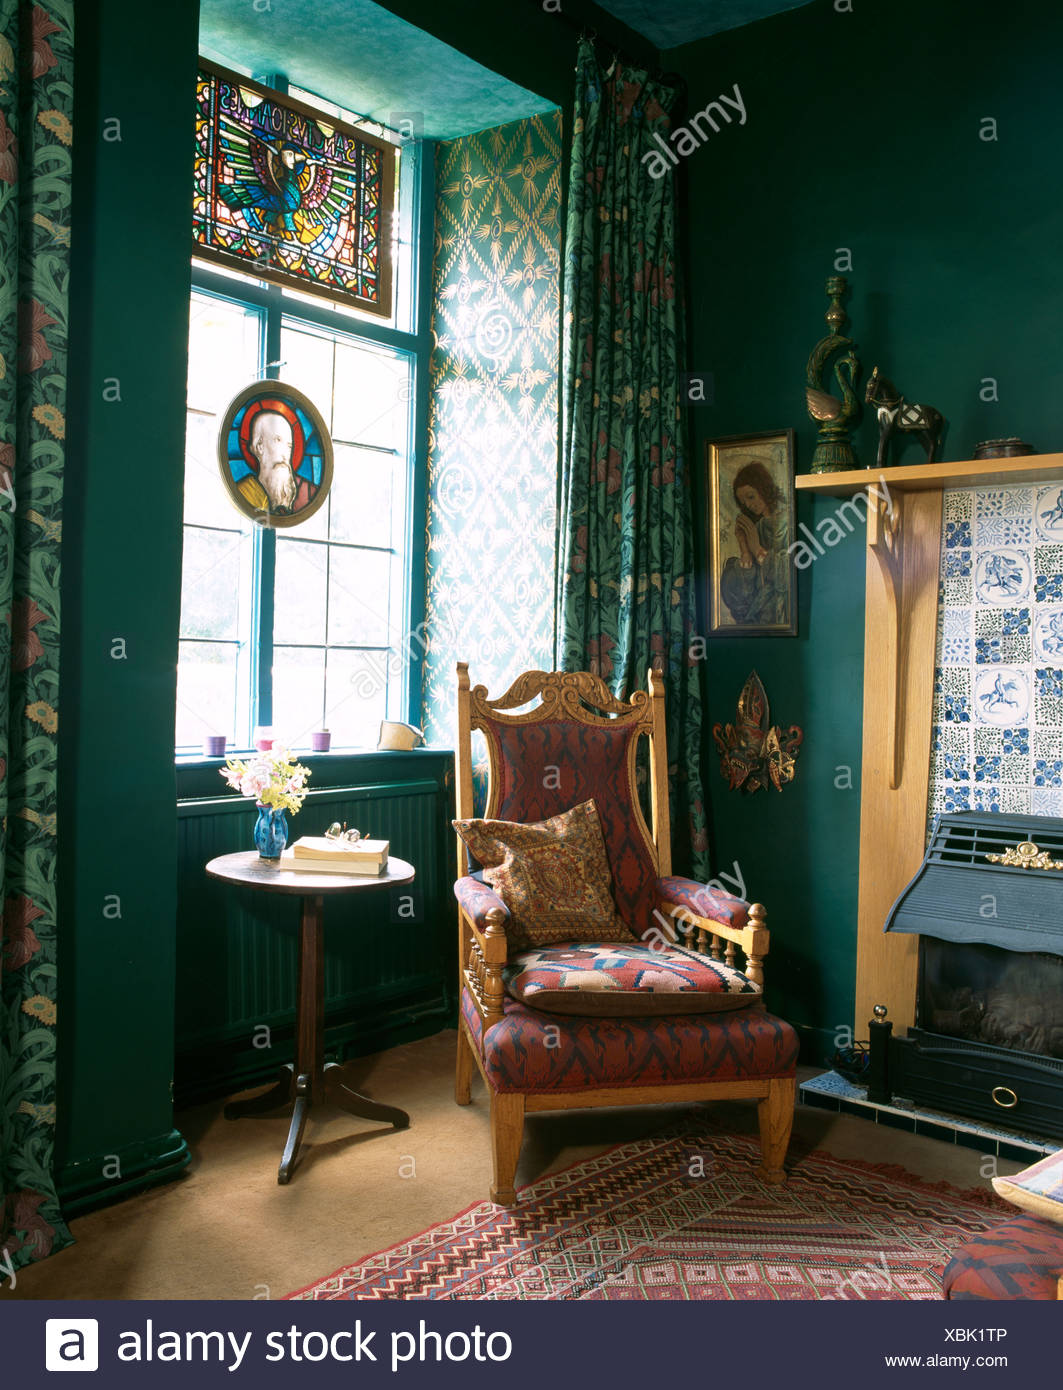 Edwardian Armchair Beside Fireplace With Electric Fire In Dark Green Living  Room With Stained Glass Panel In Window